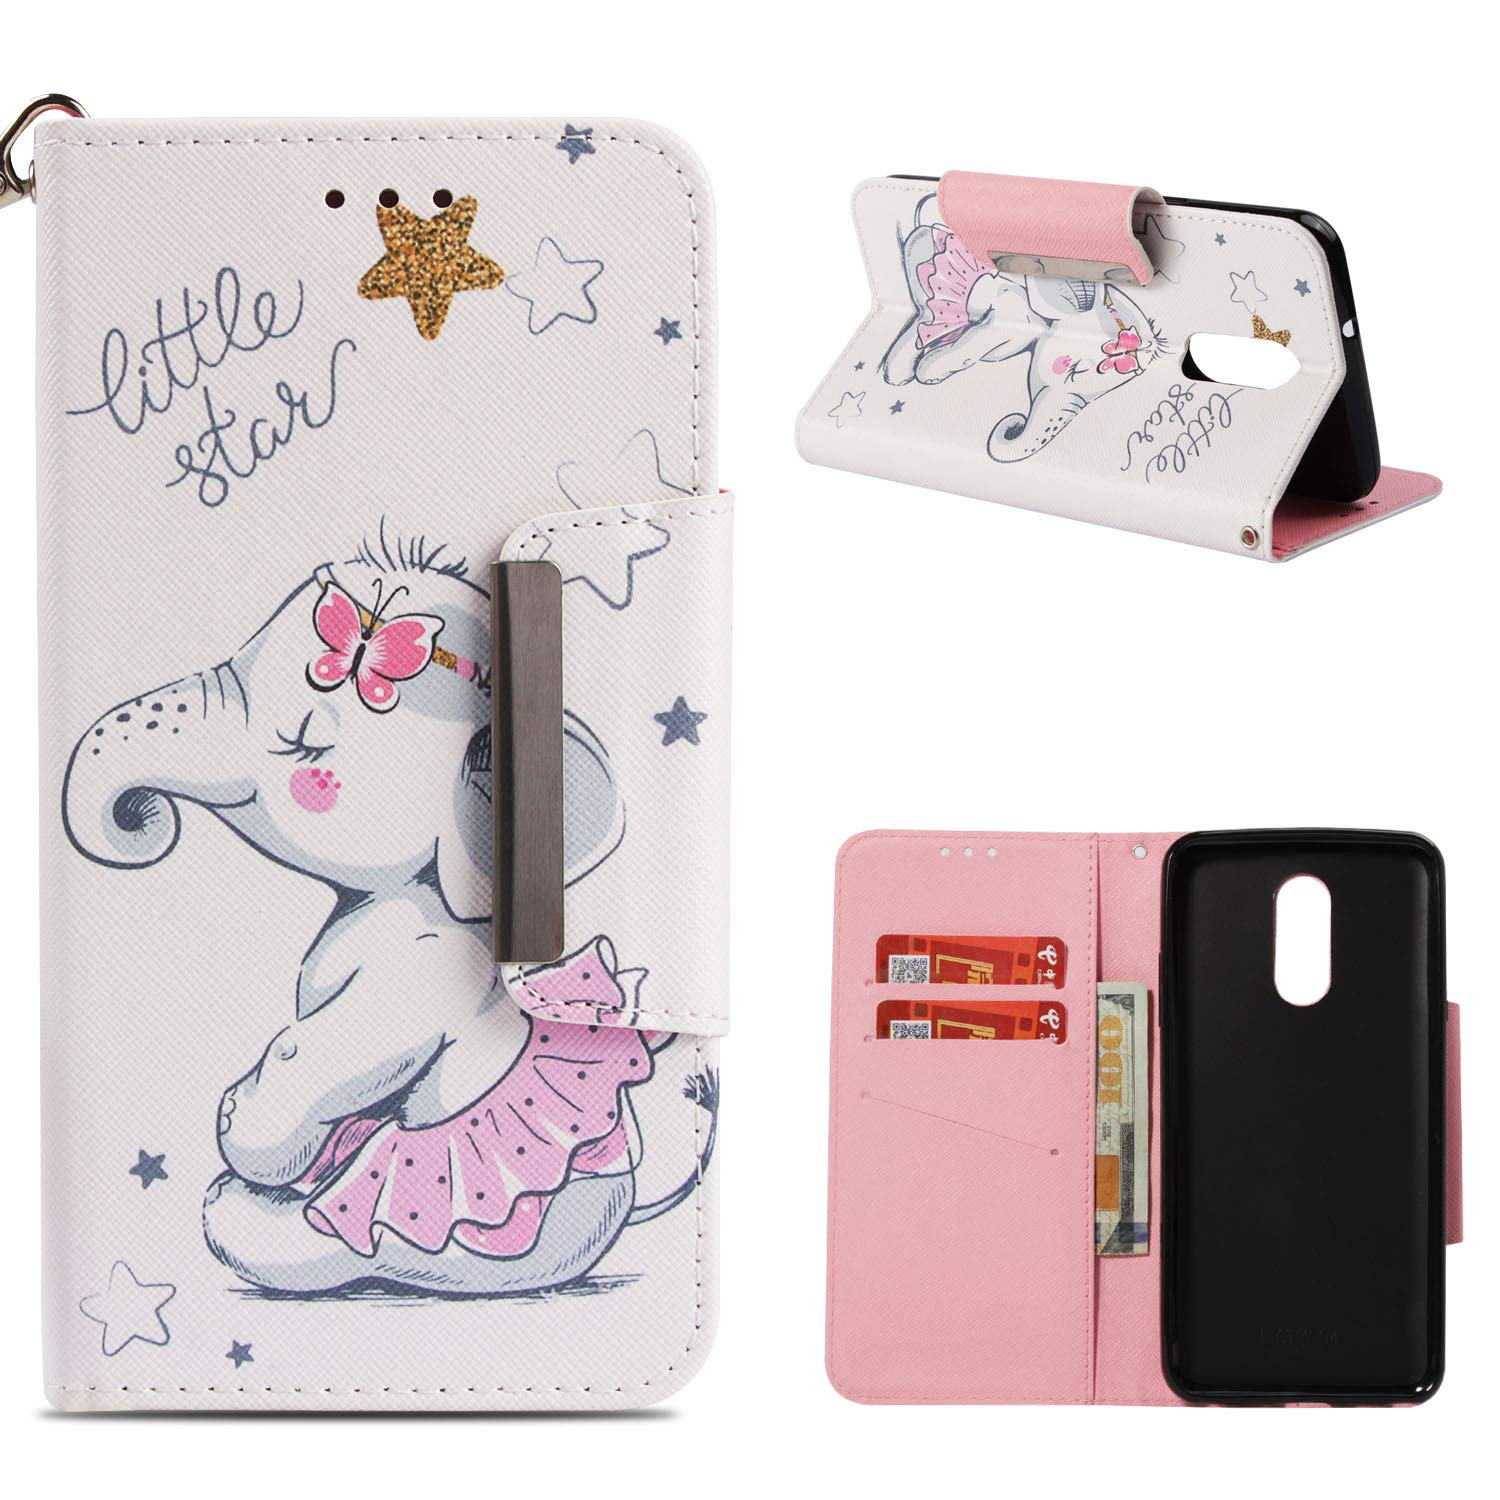 Leather Wallet Case for LG Q Stylus/LG Stylo 4,Shinyzone Cute Cartoon Animal Elephant Painted Pattern Flip Stand Case,Wristlet & Metal Magnetic Closure Protective Cover